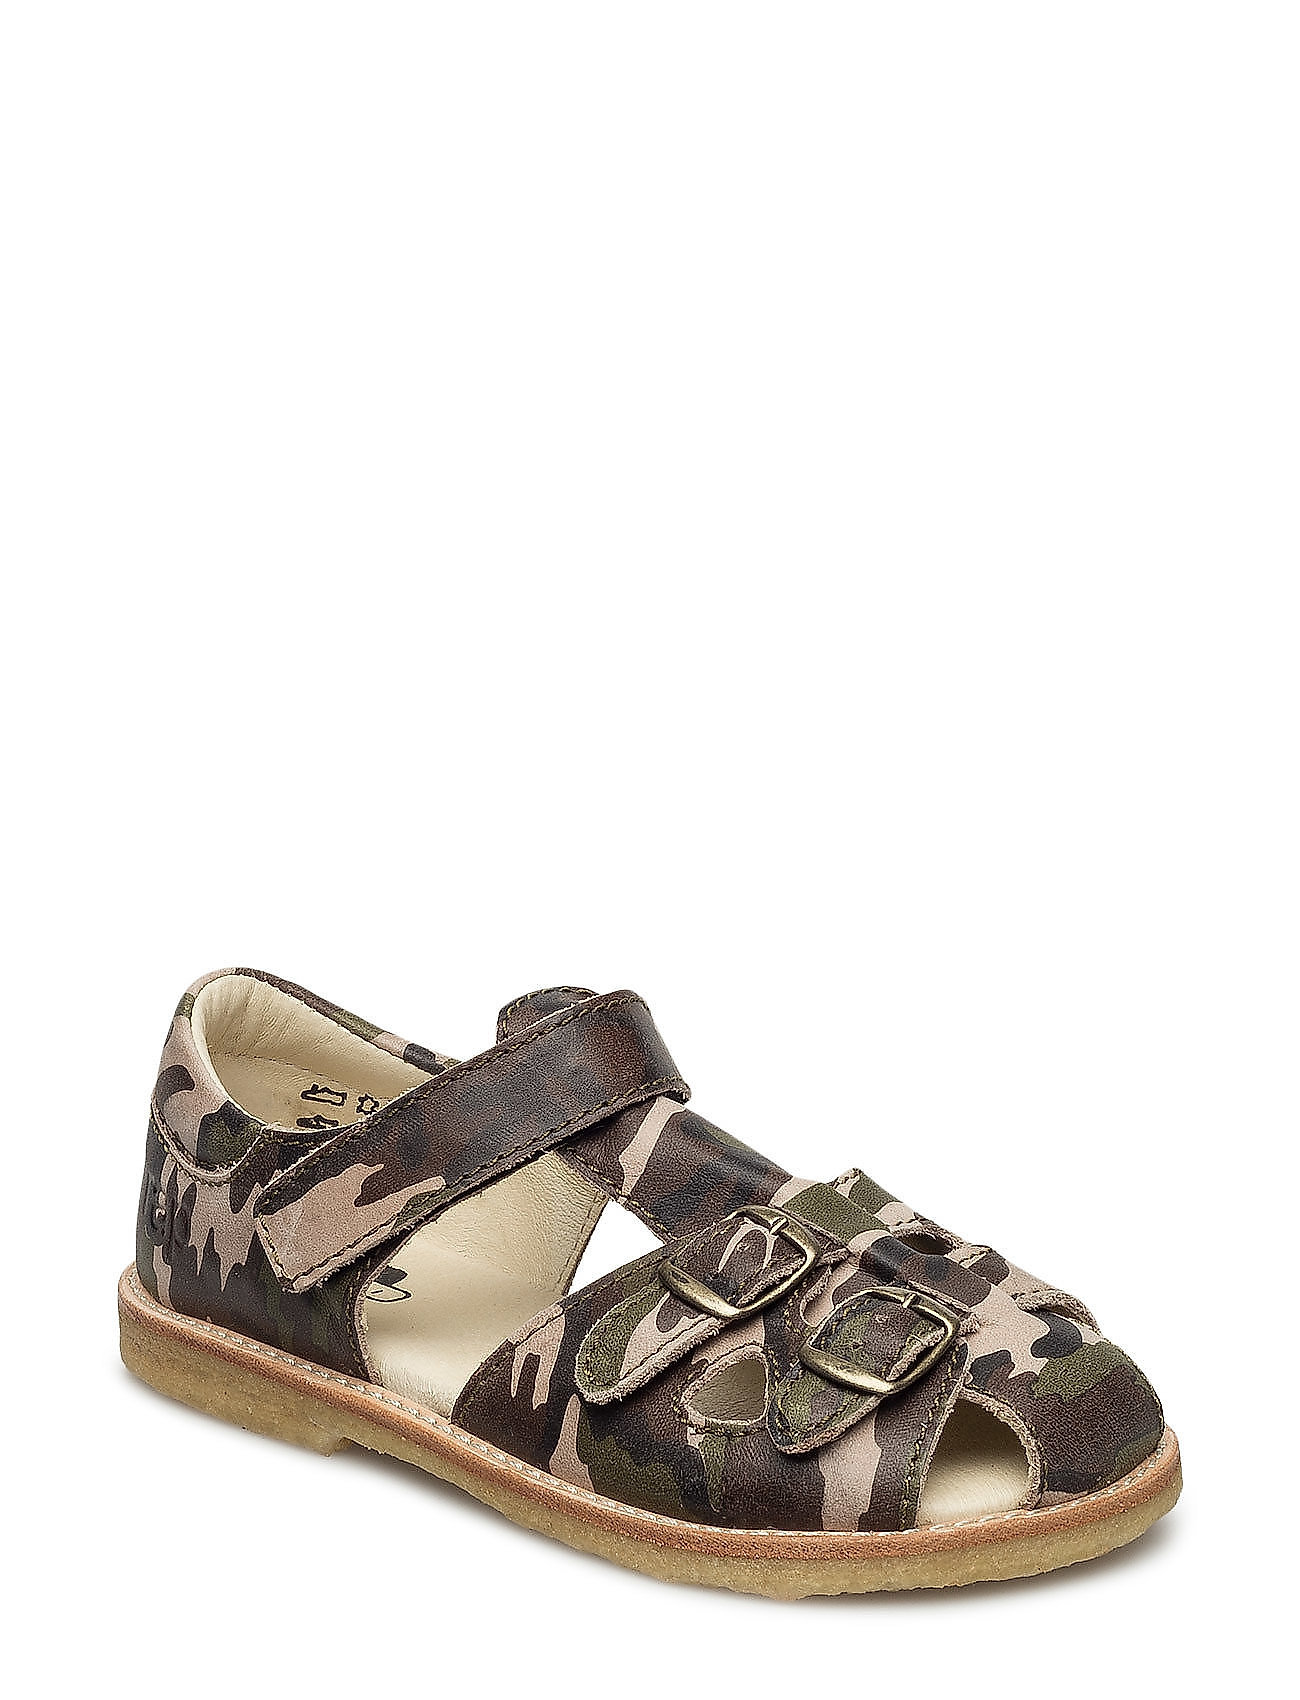 Arauto RAP ECOLOGICAL CLOSED RETRO SANDAL, MEDIUM/WIDE FIT - 63-ARMY